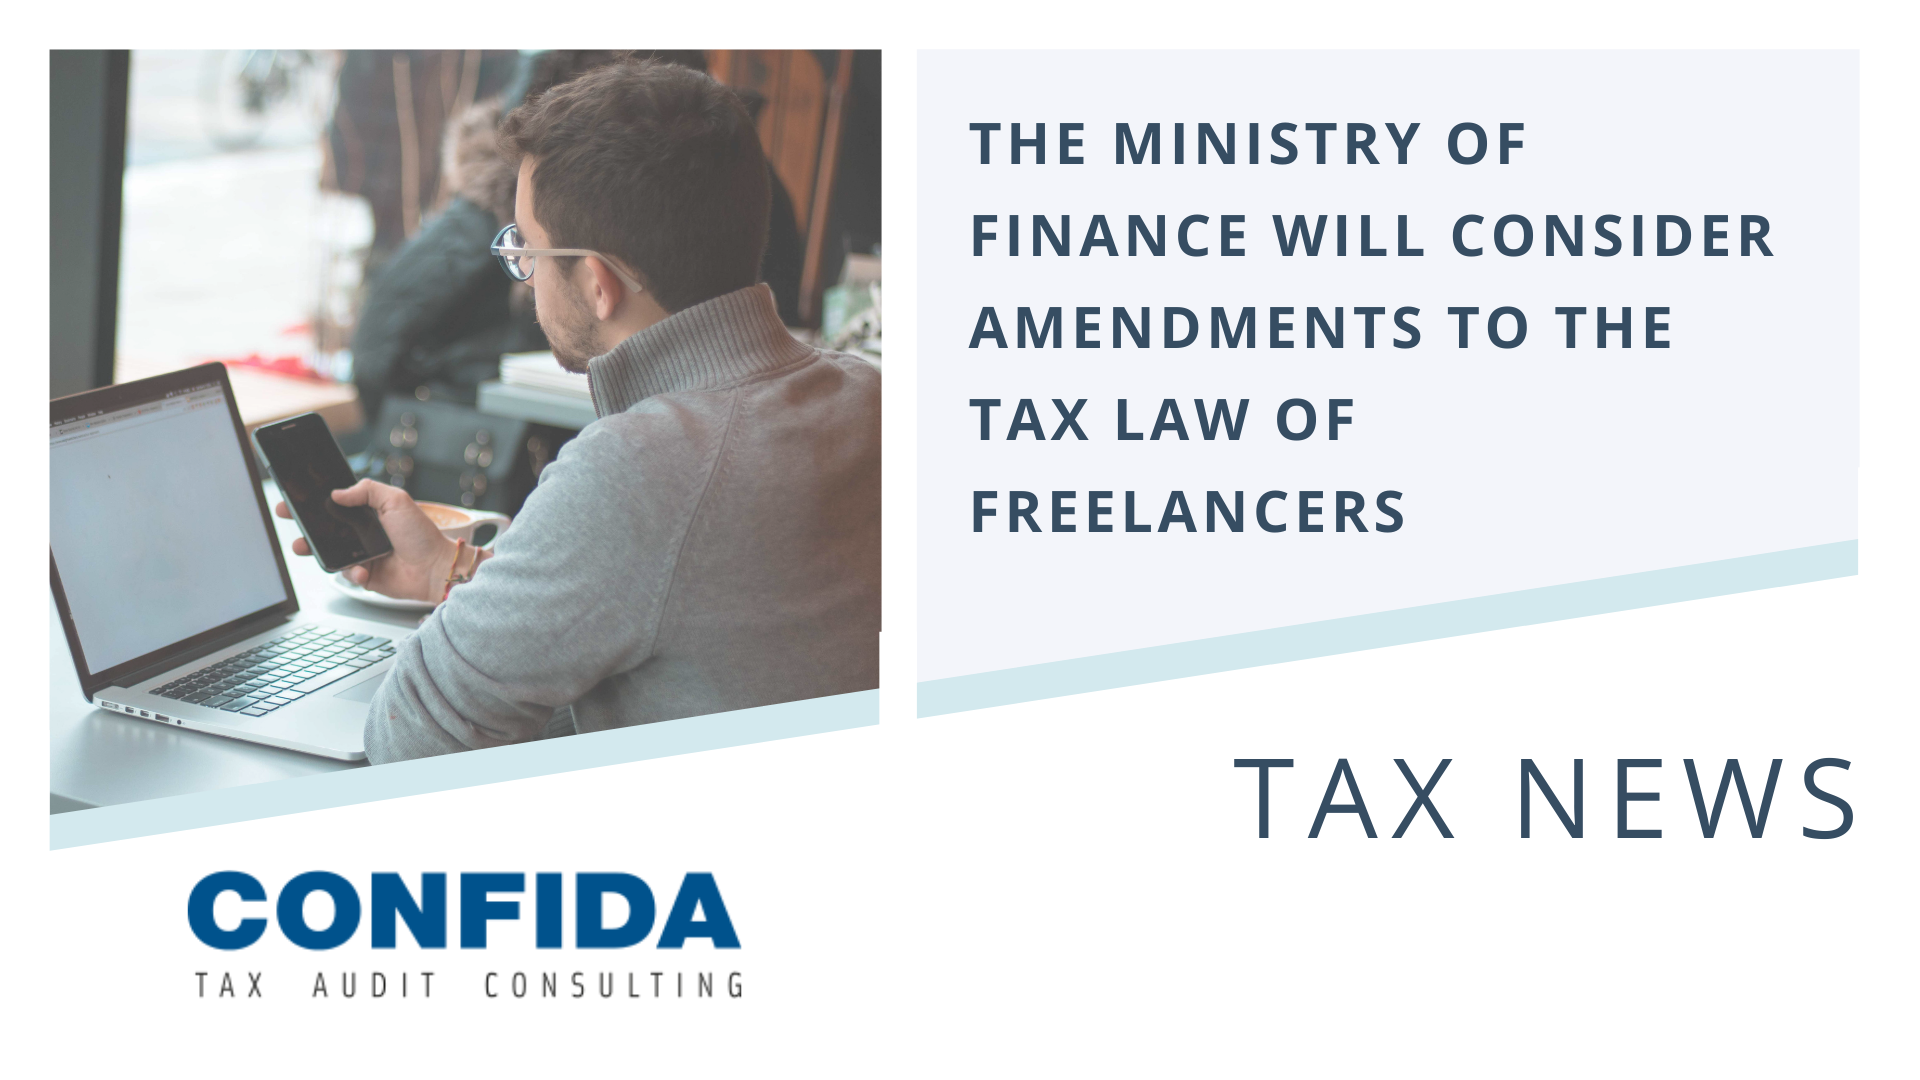 amendments to the Tax Law of Freelancers